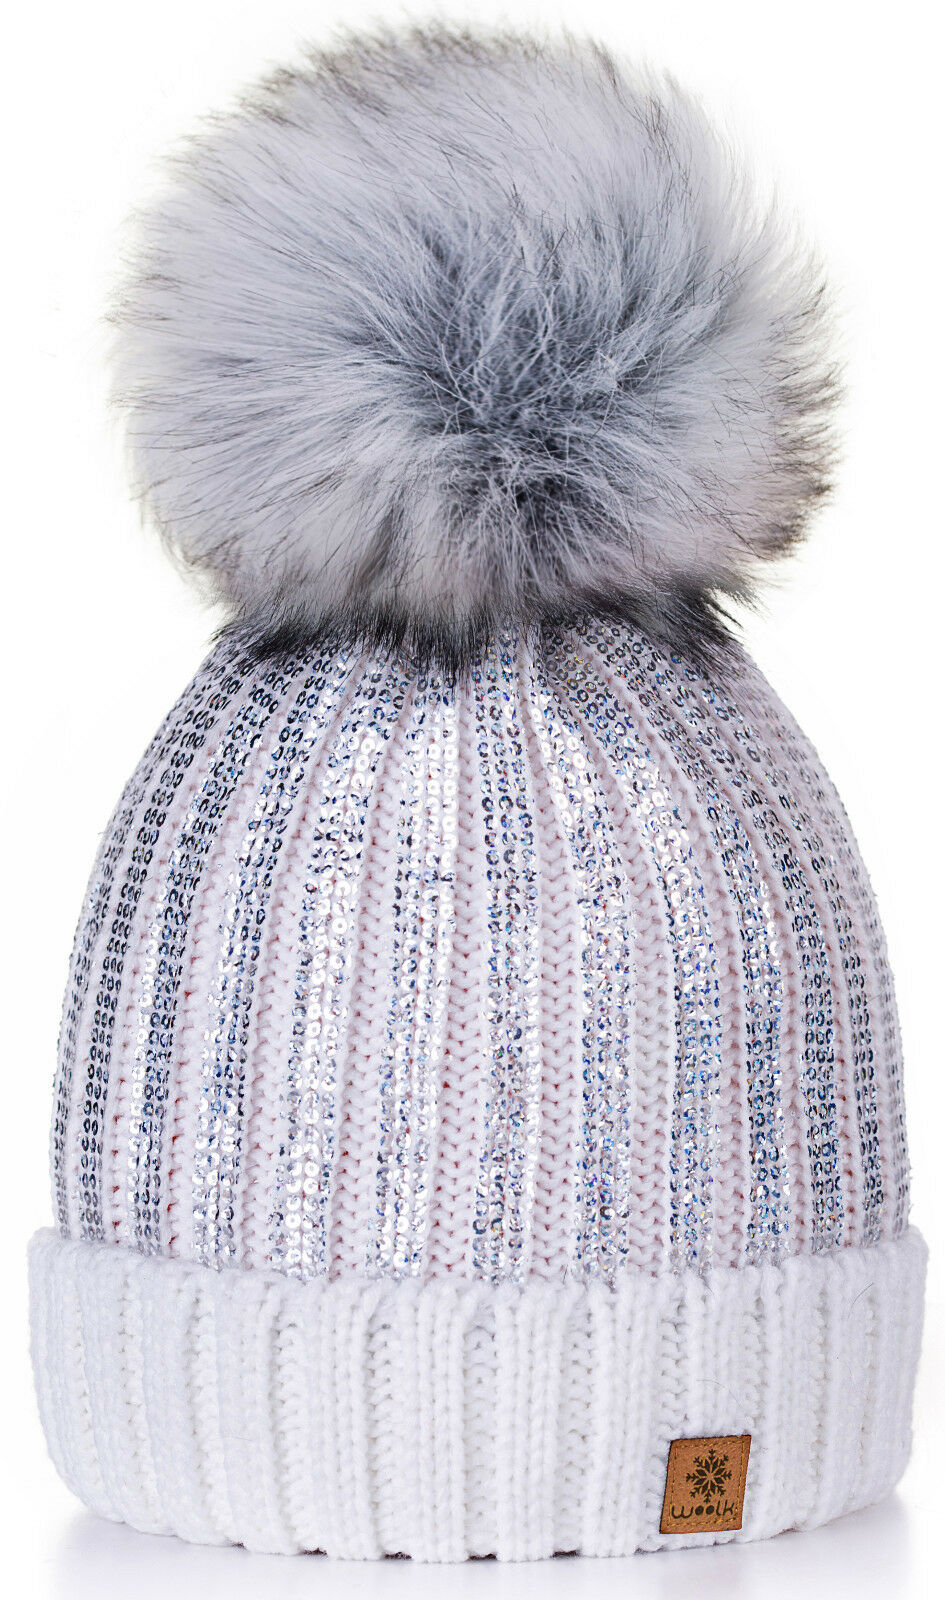 c657d32ad43 4sold Womens Girls Winter Hat Knitted Beanie Large Pom Cap Ski ...